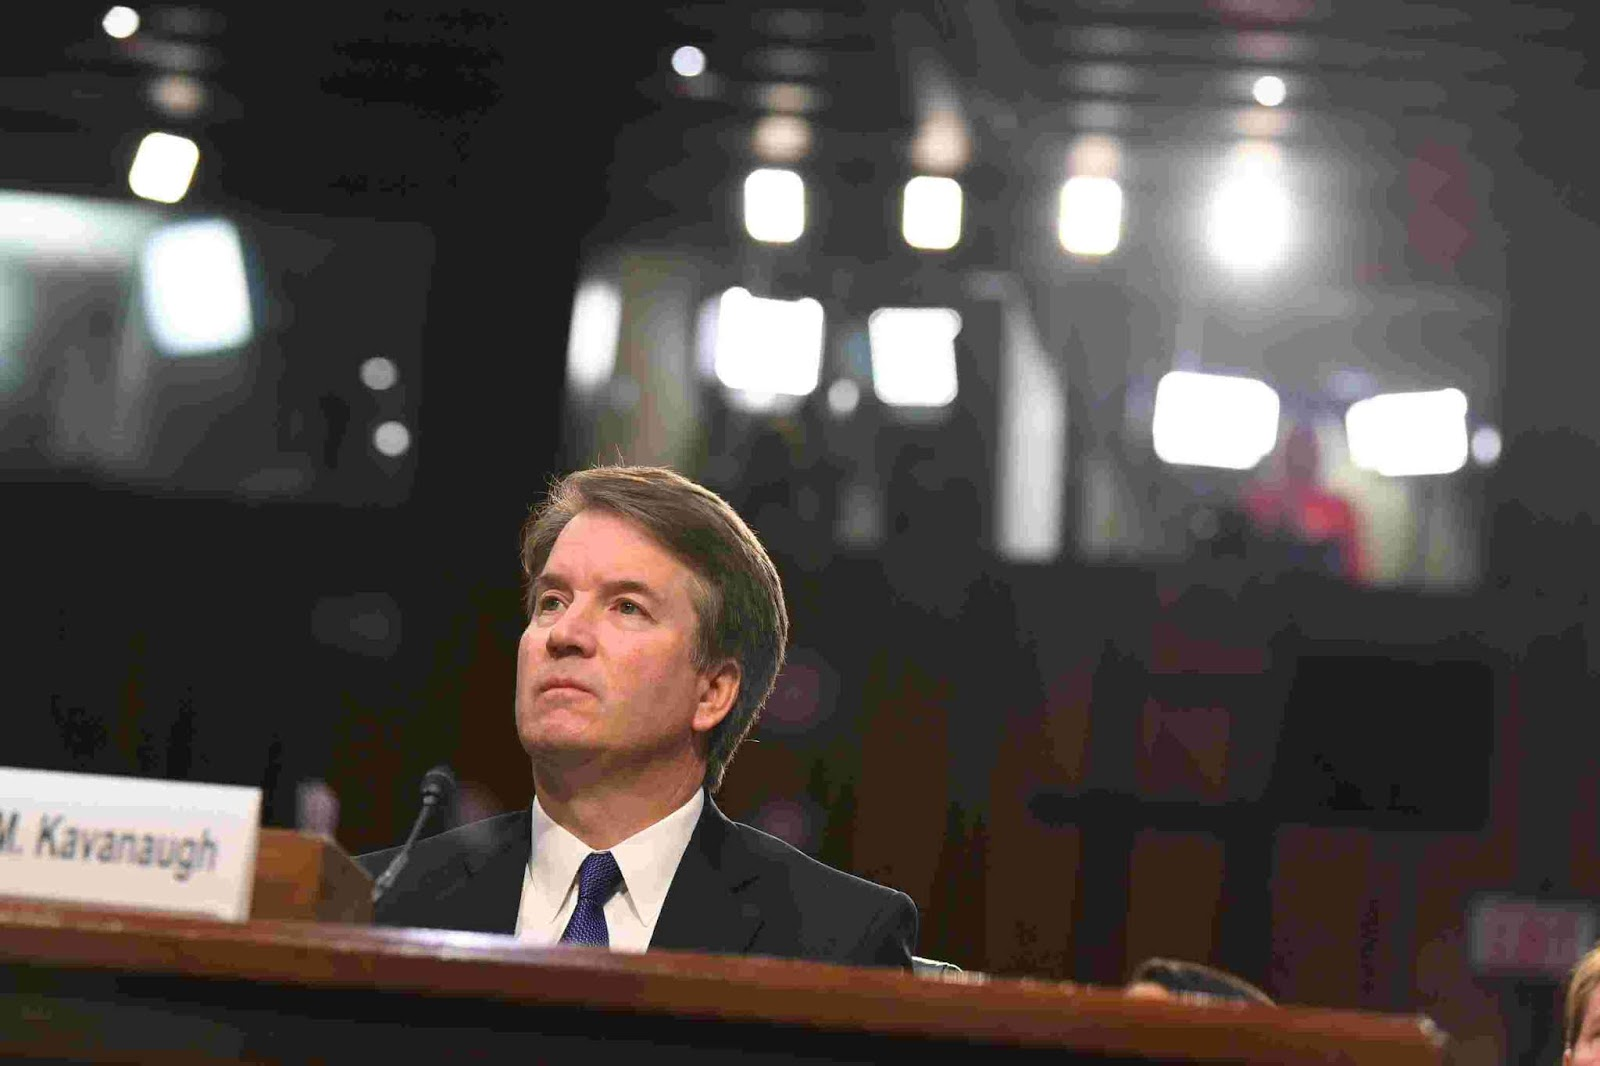 Brett Kavanaugh: Supreme Court Nomination Hearing Begins With Skirmishes, Charge Of 'Mob Rule'